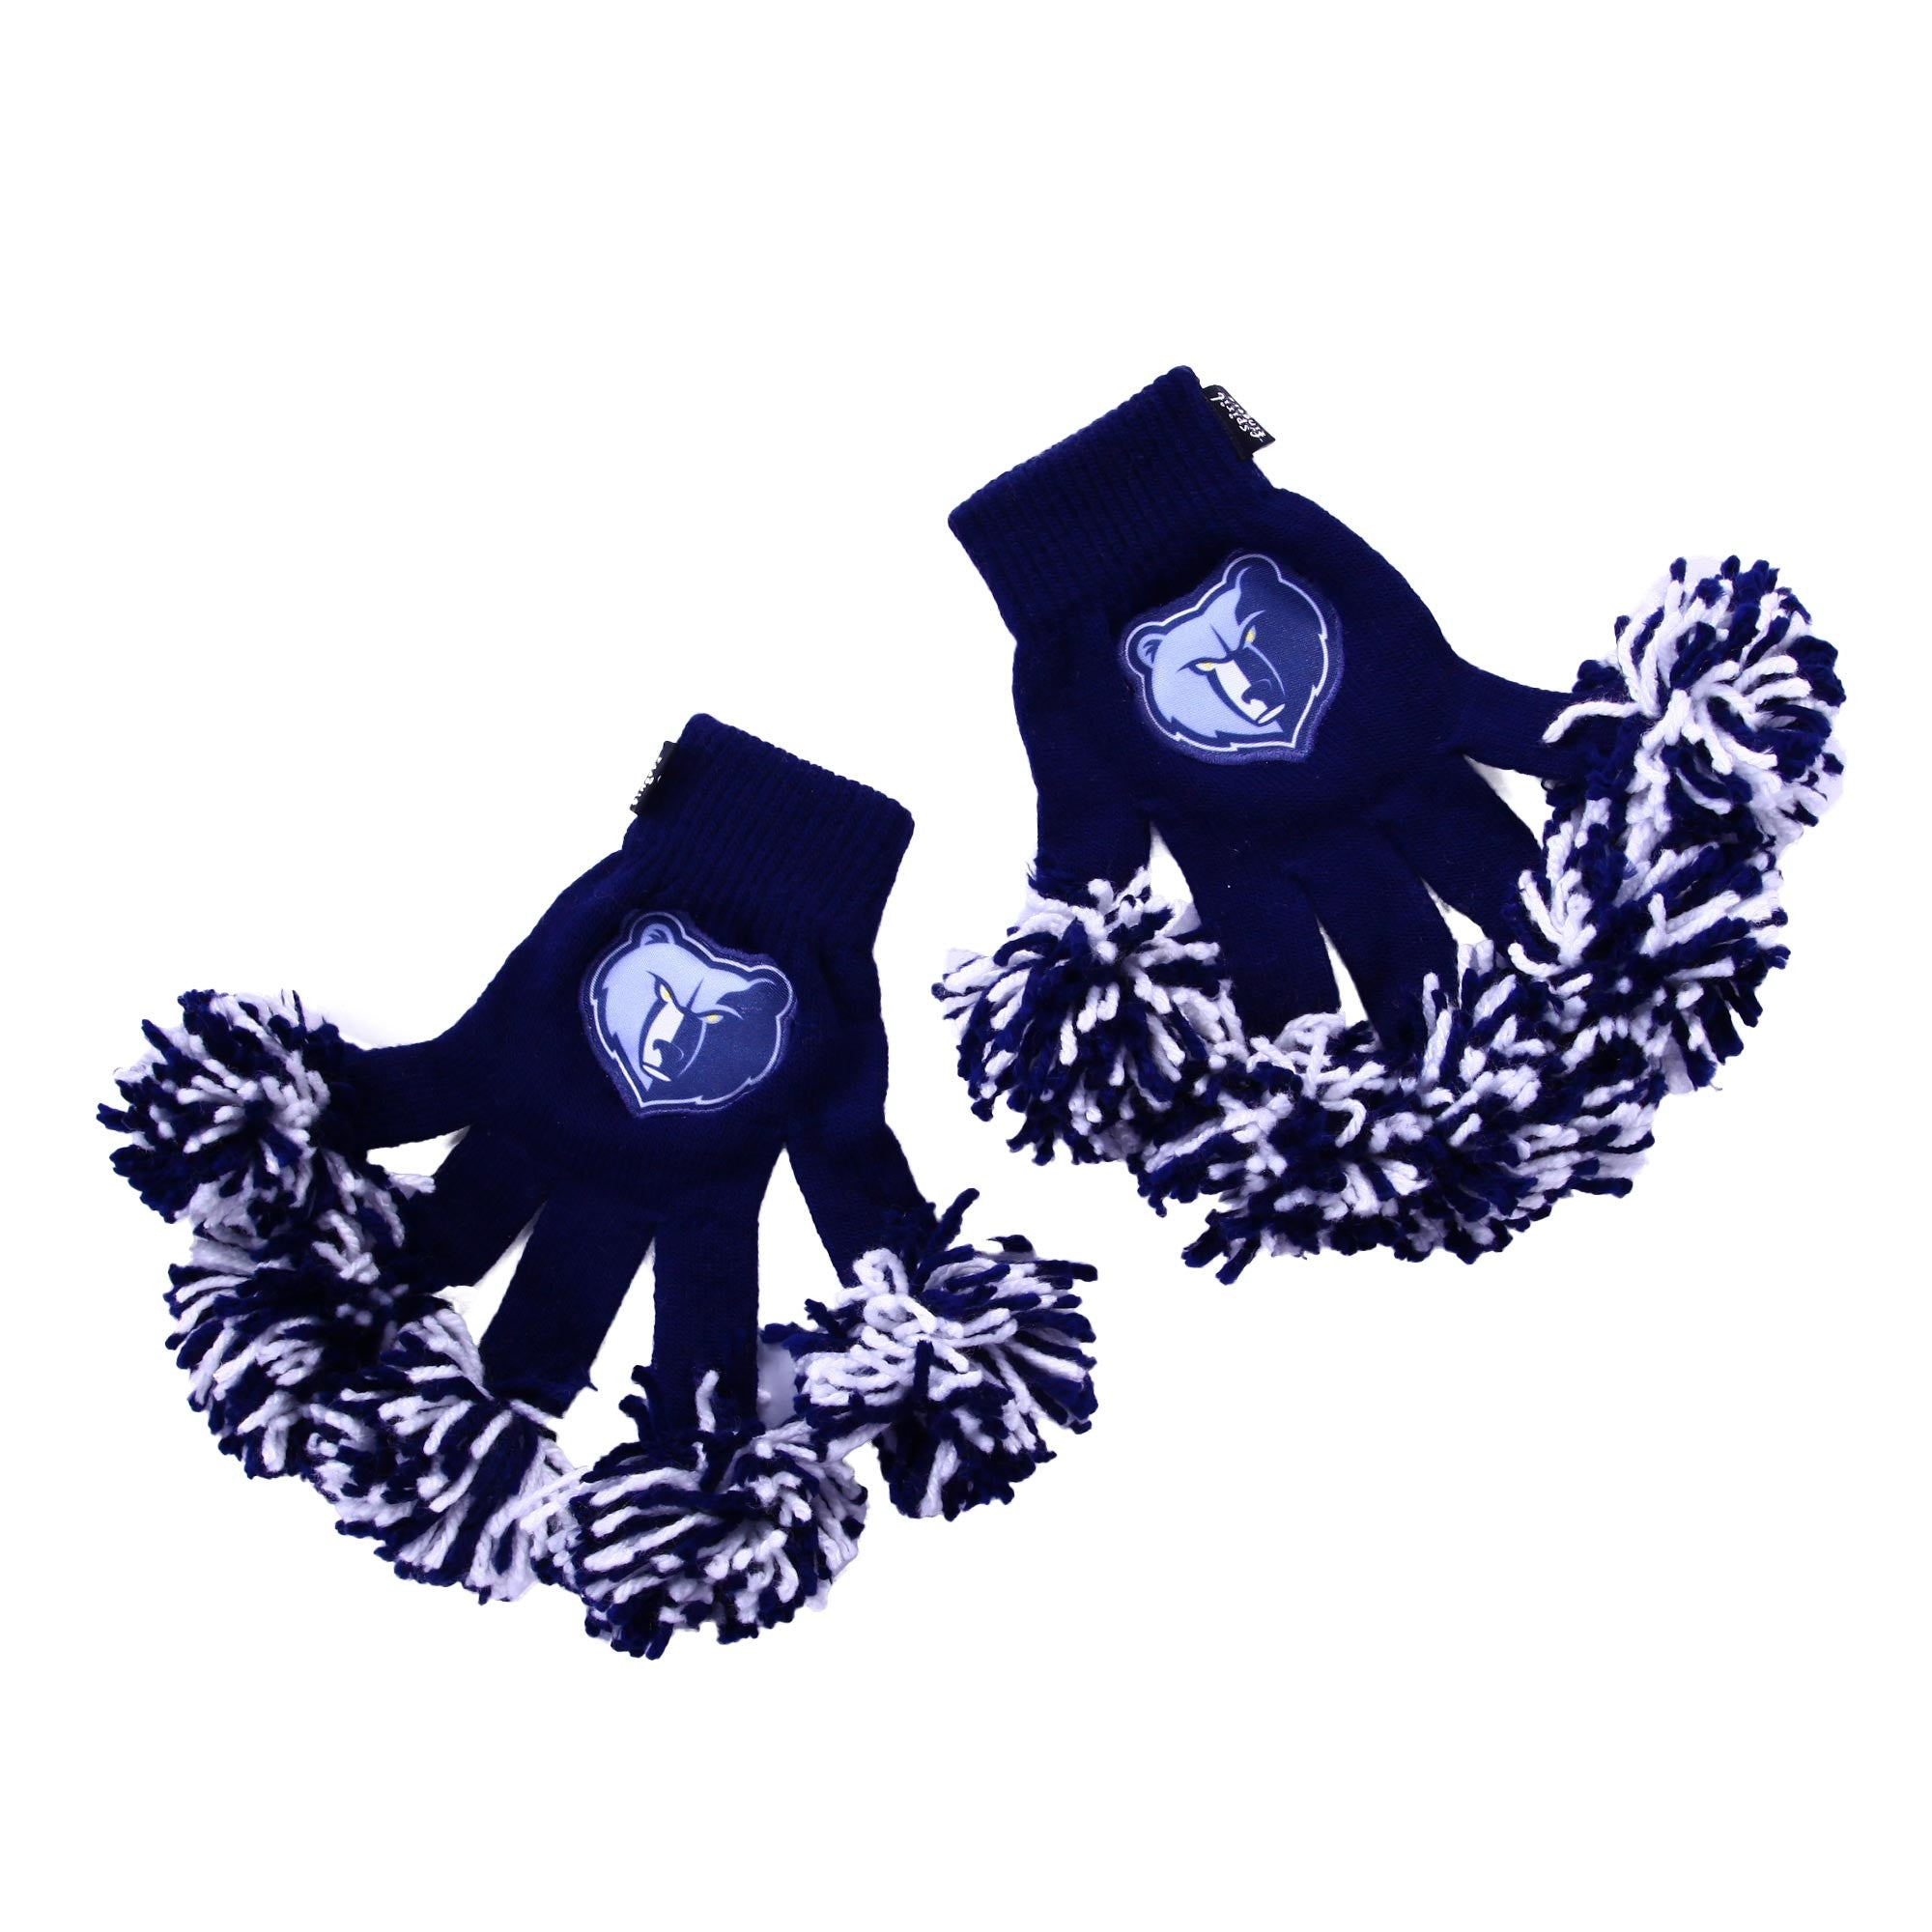 Memphis Grizzlies NBA Spirit Fingerz Cheerleading Pom-Pom Gloves